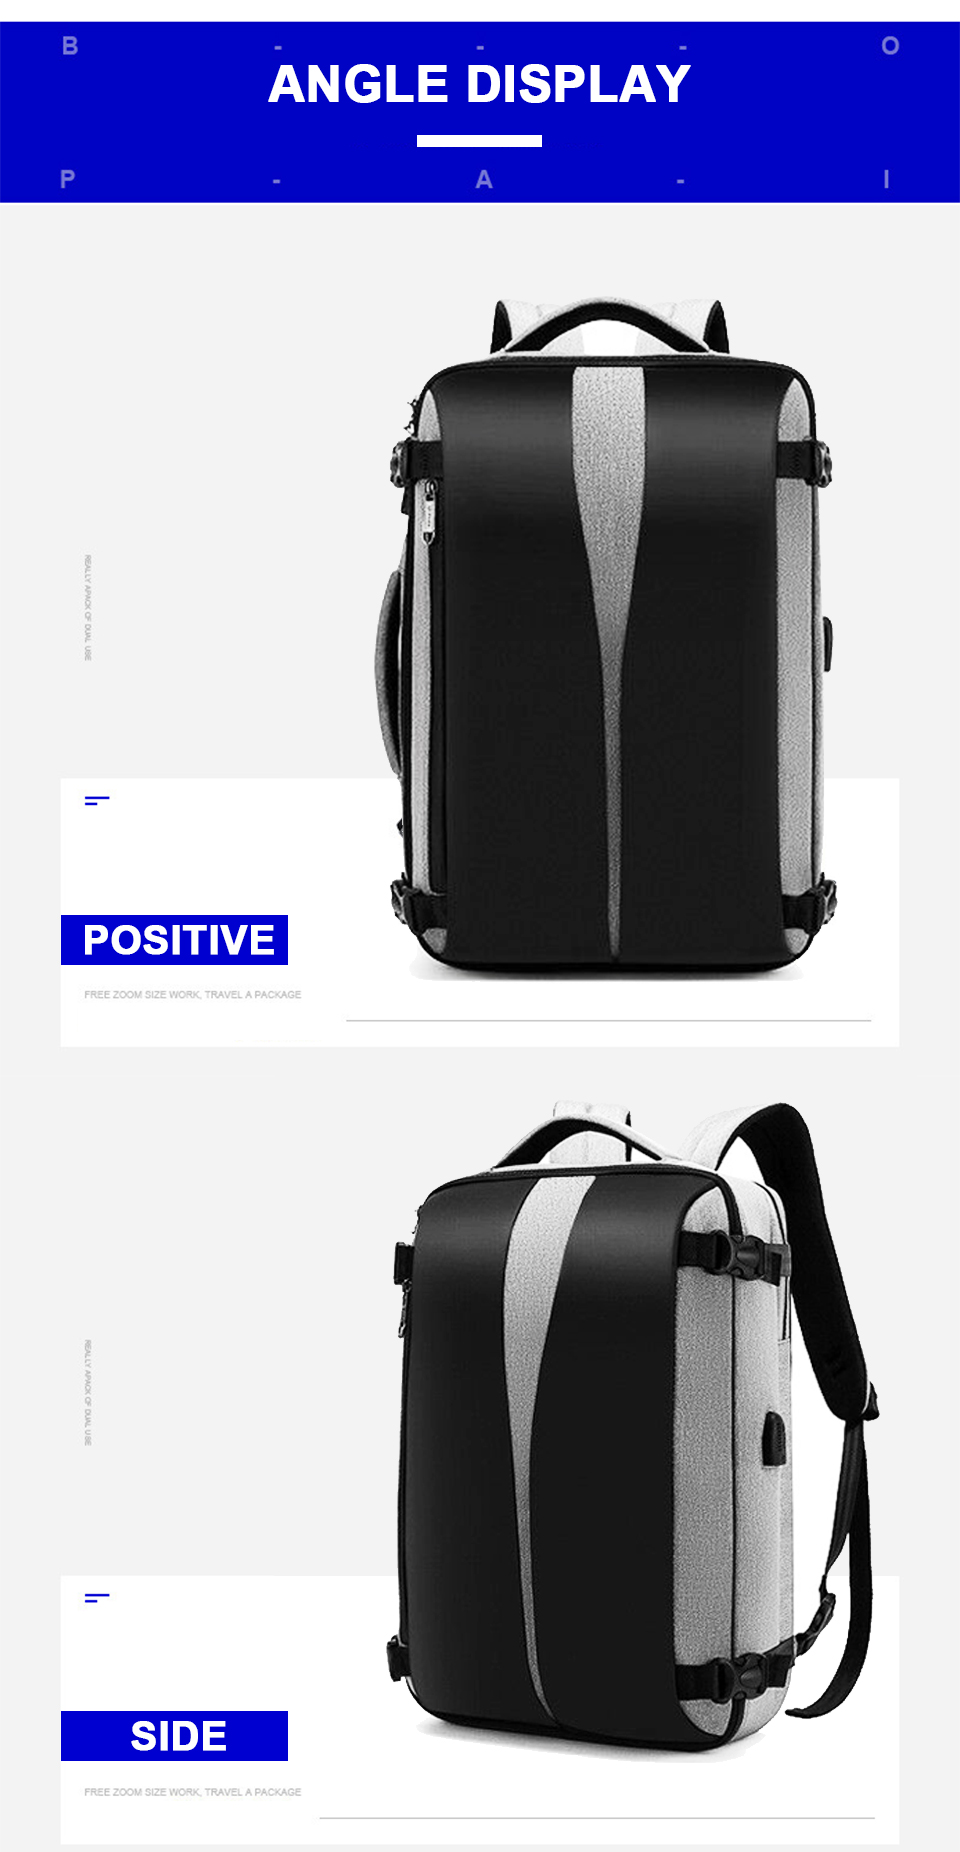 Men Backpack Anti Theft Travel Bagpack Laptop 15.6 Inch Notebook Waterproof Bags USB Charging Male Business Fashion Unisex Bag (14)